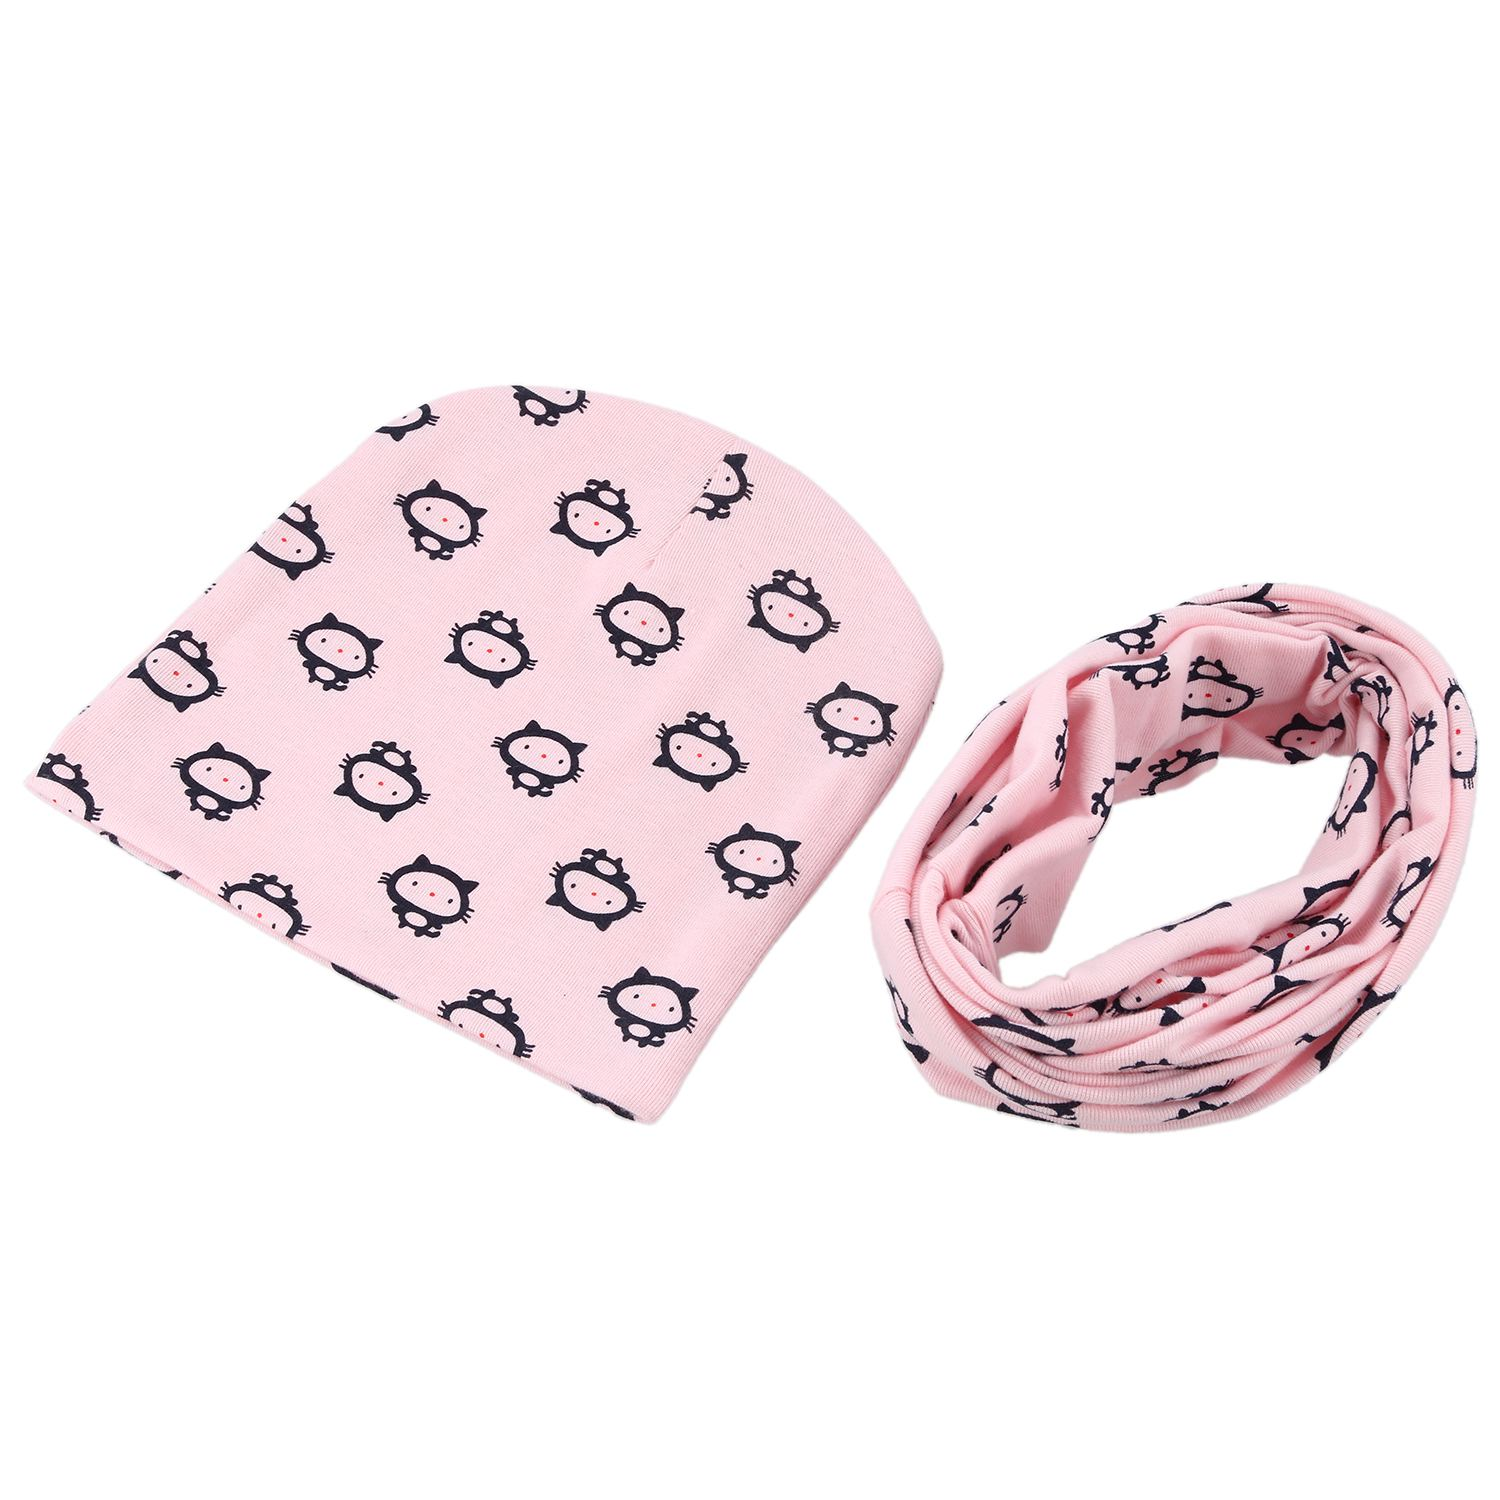 Baby Hat And Scarf Set, Beanie Hat With Snood Scarf Neck Warmer For Infant Kids Pink